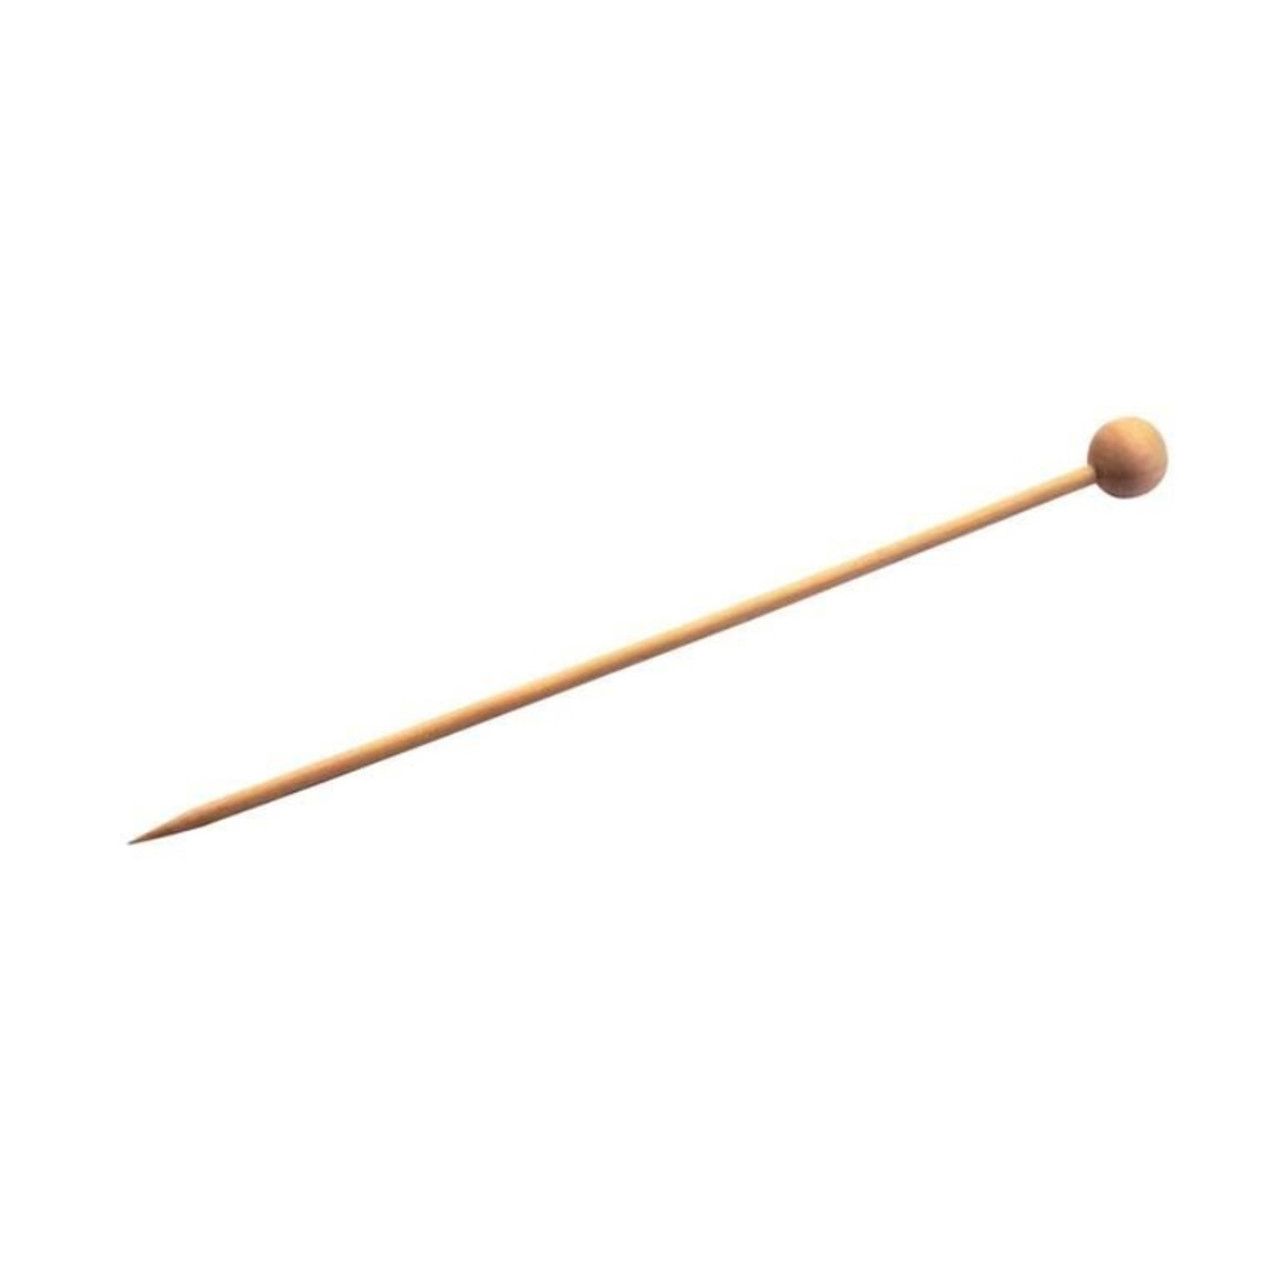 Bambi Natural Bamboo Ball Skewers - L:5.45in